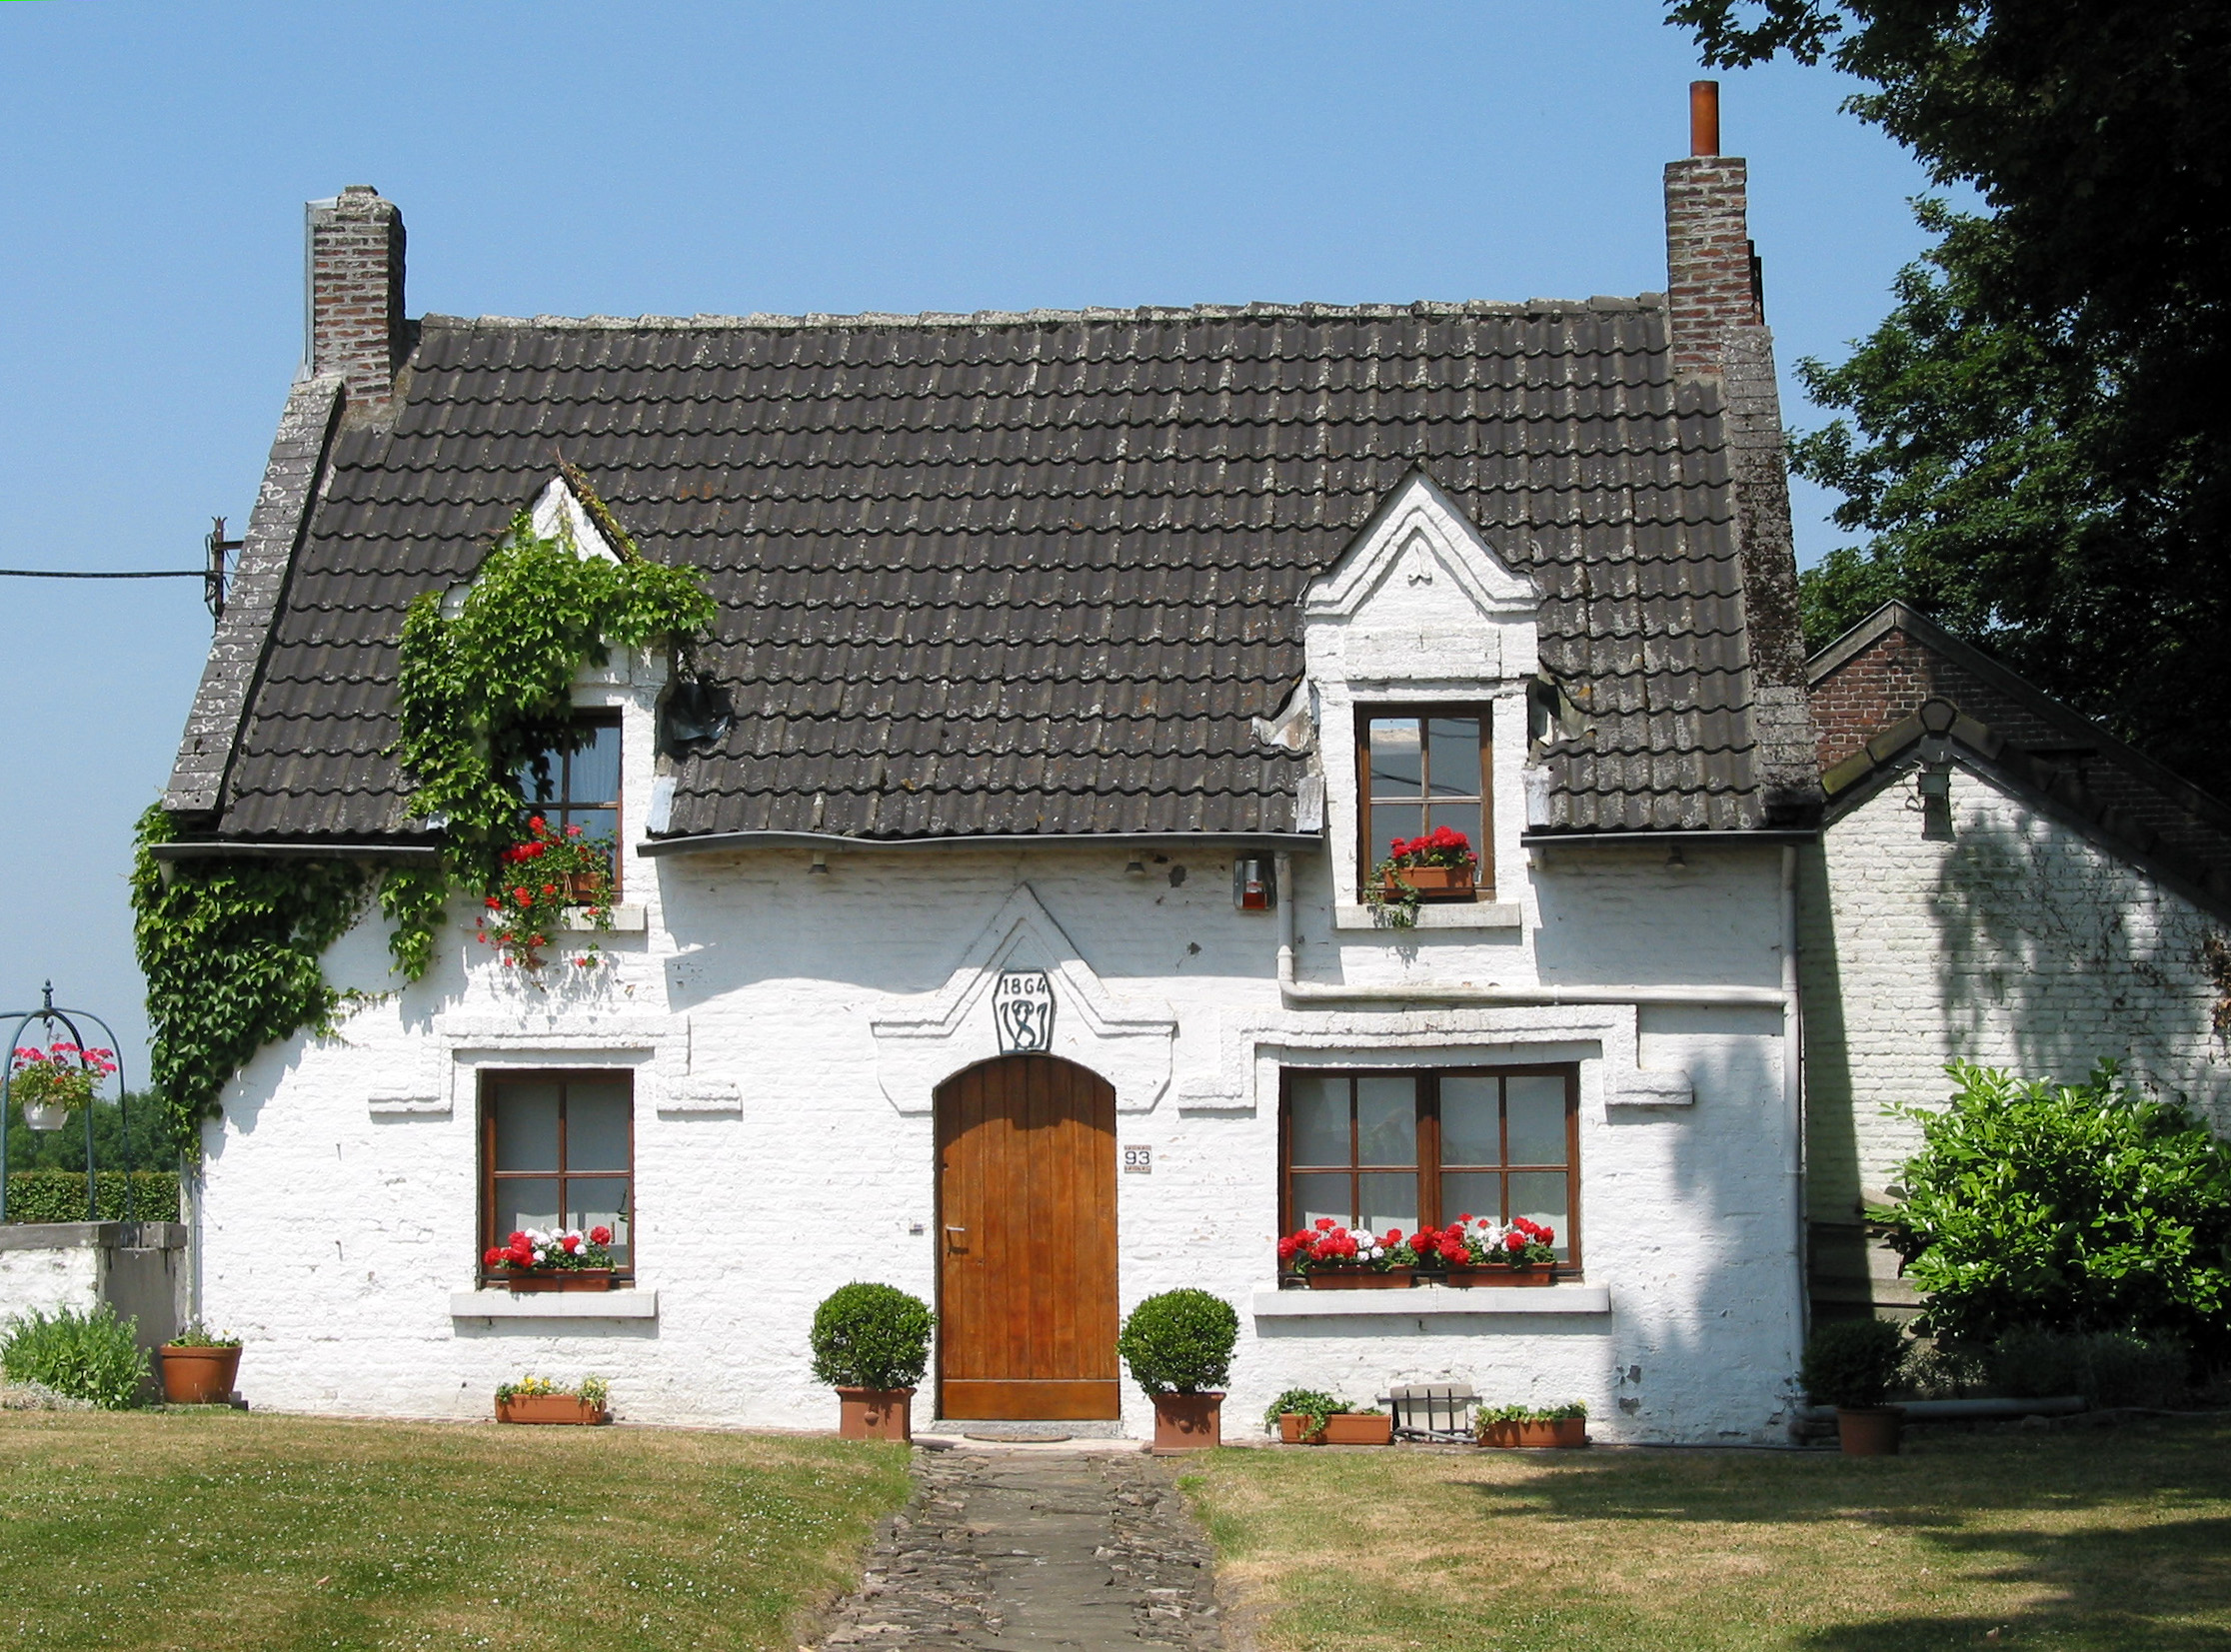 File:Jehay - Ancienne maison.JPG - Wikimedia Commons